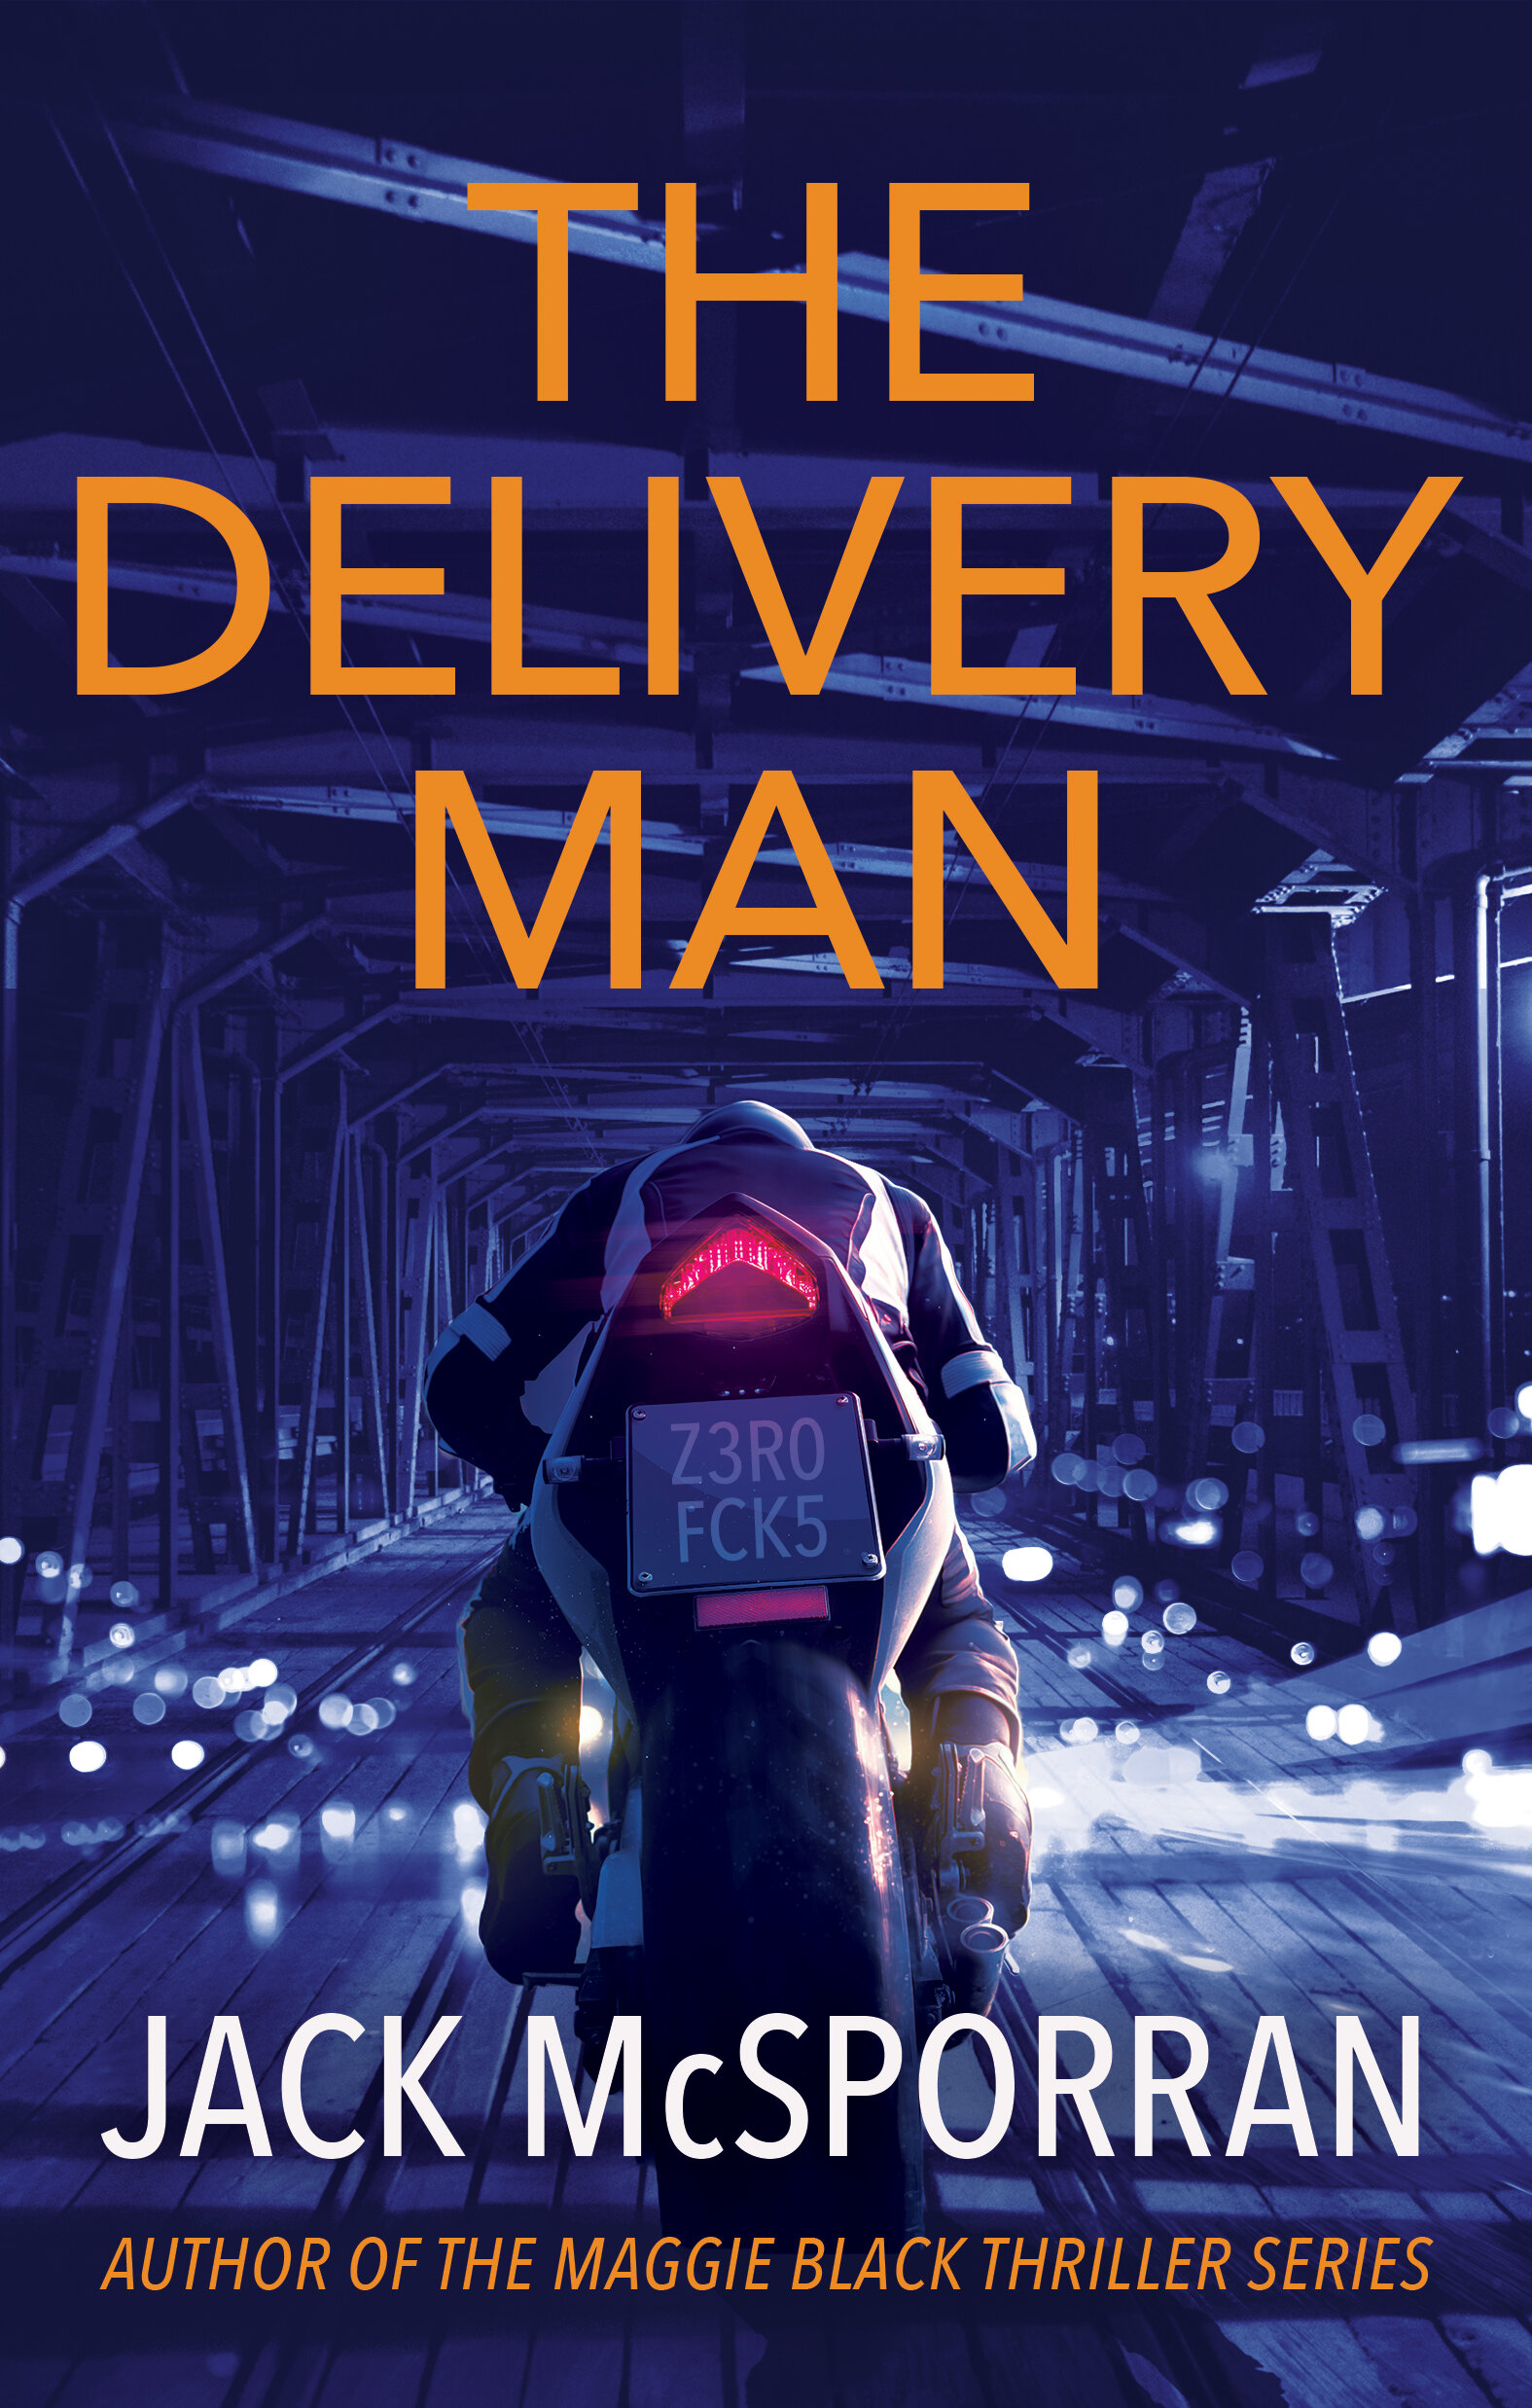 THE DELIVERY MAN.jpg